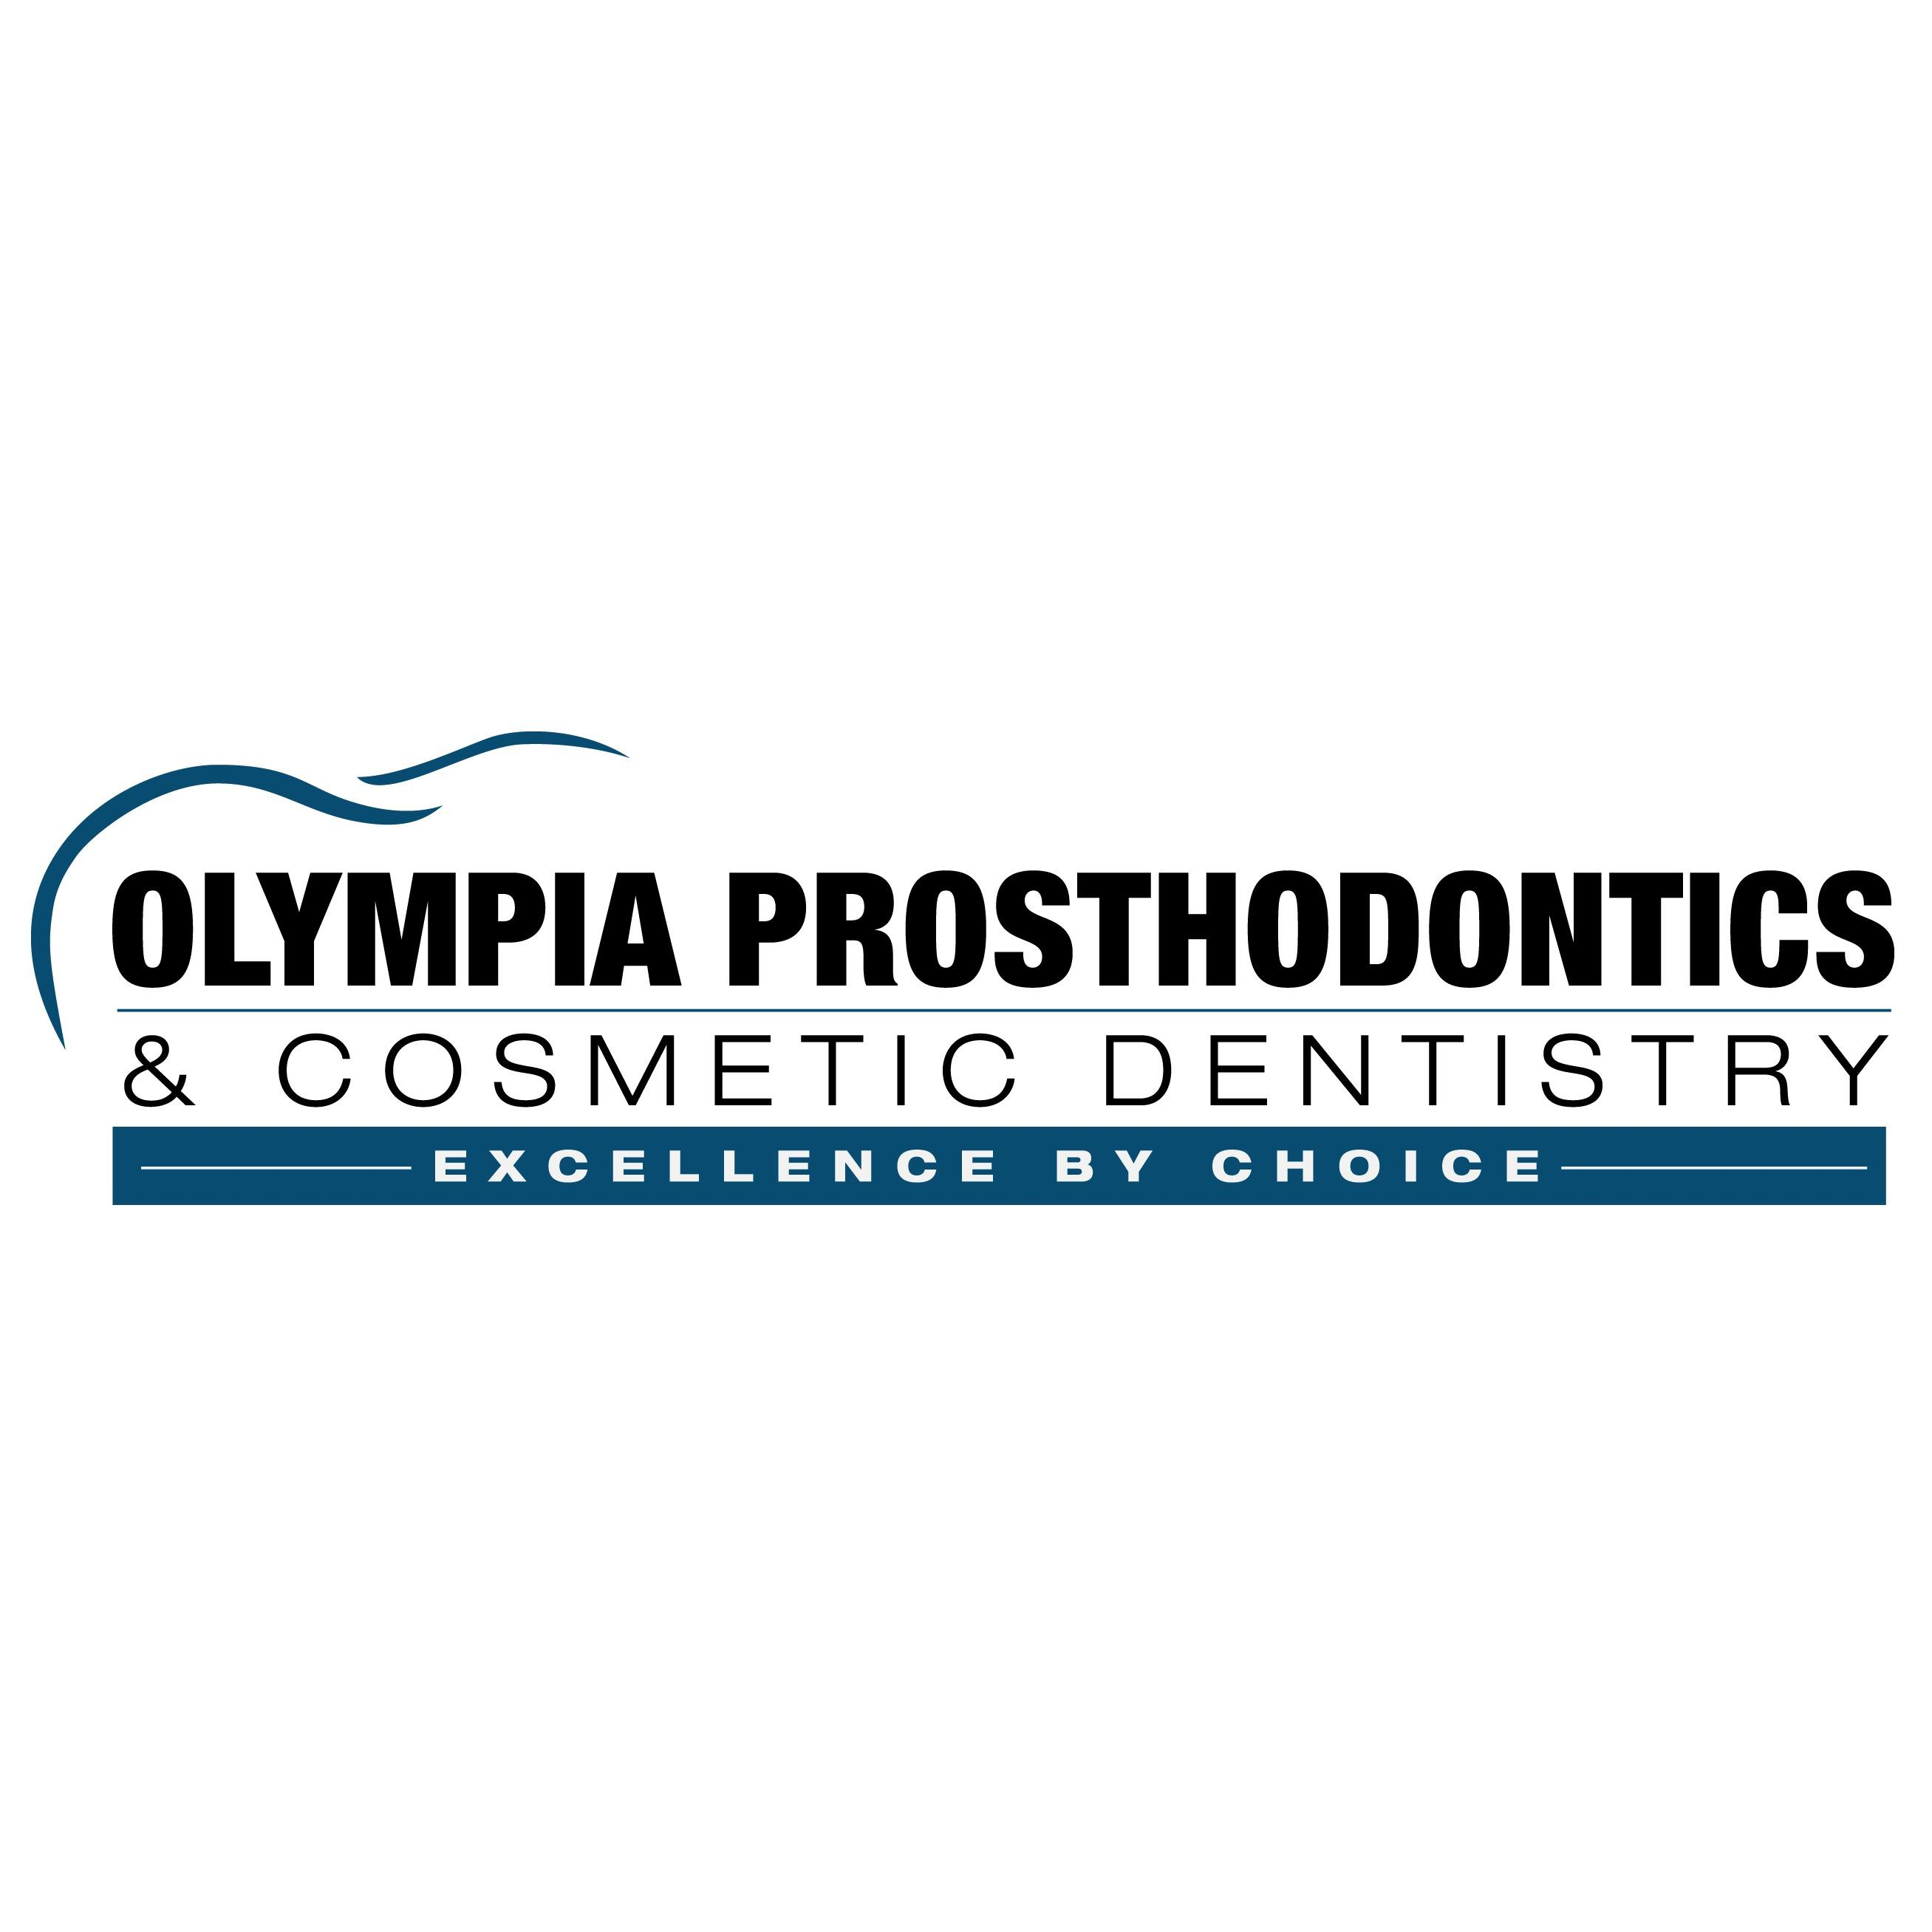 Olympia Prosthodontics and Cosmetic Dentistry - Olympia, WA - Dentists & Dental Services